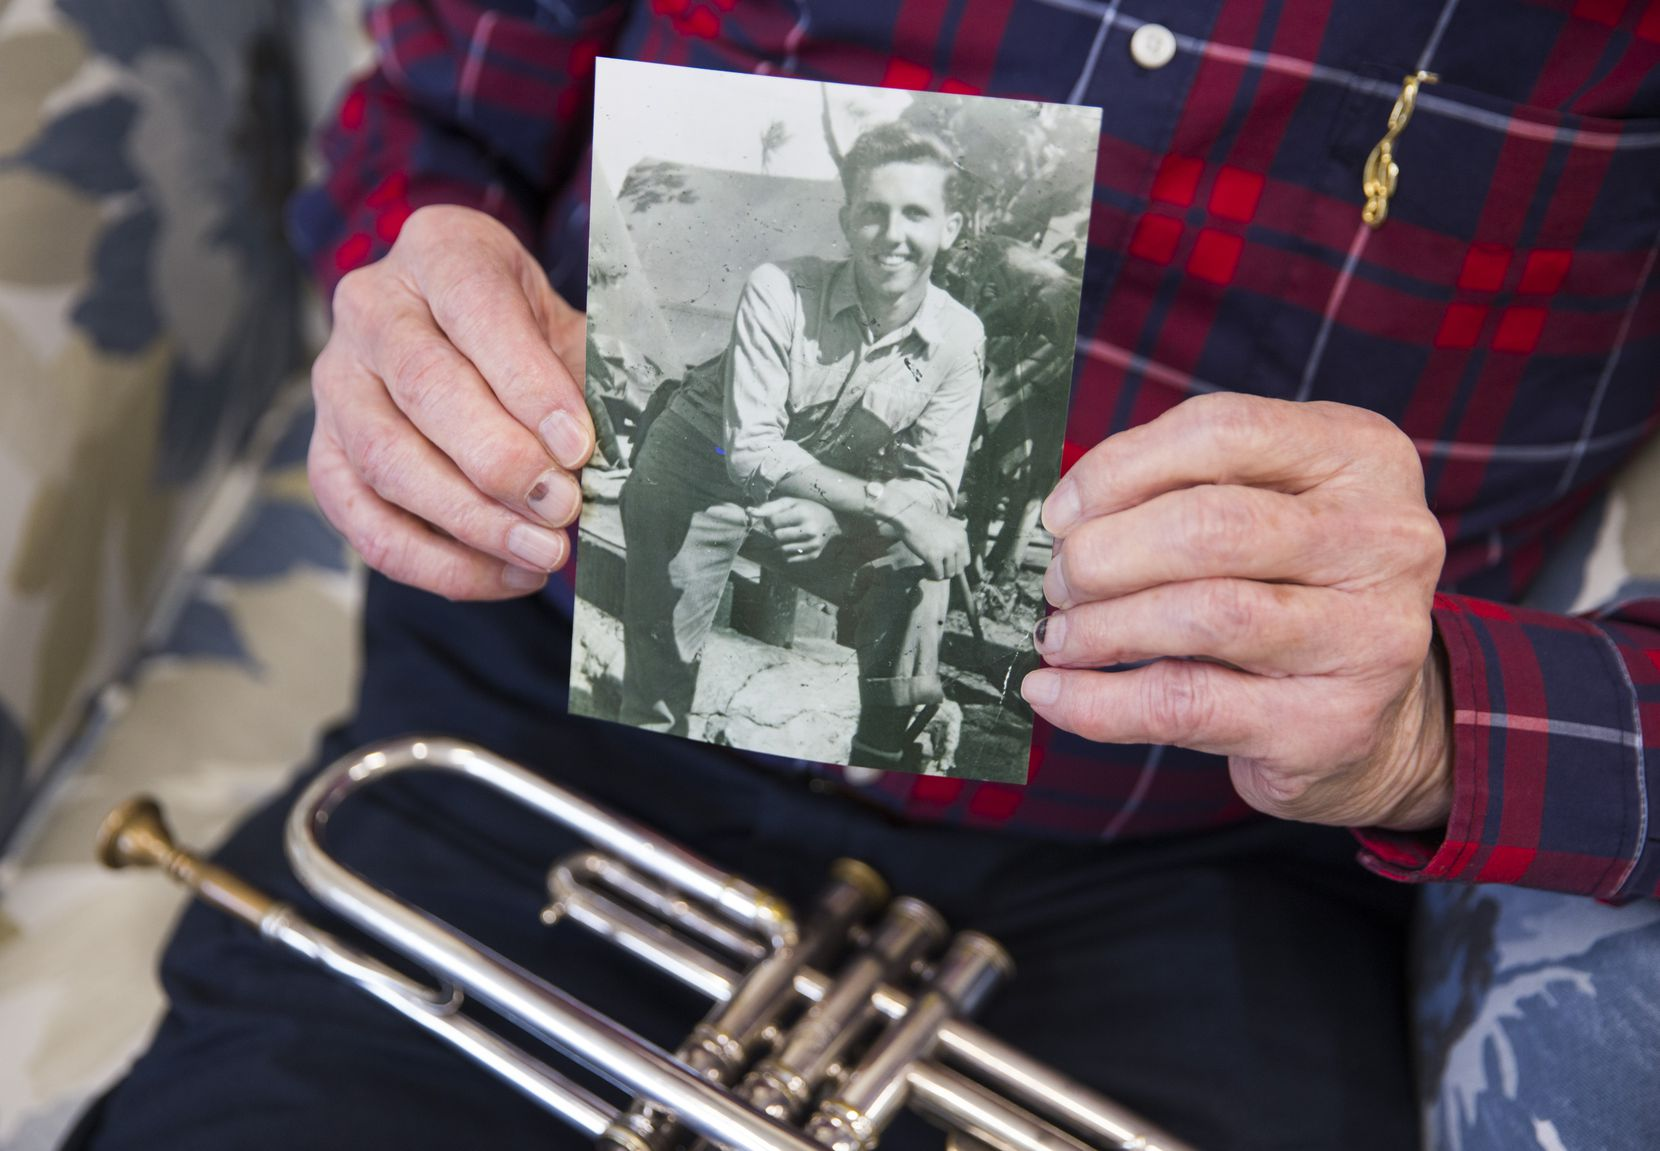 John Gould holds a photo of himself from his World War II days and his beloved trumpet, an instrument he has played since he was a child.